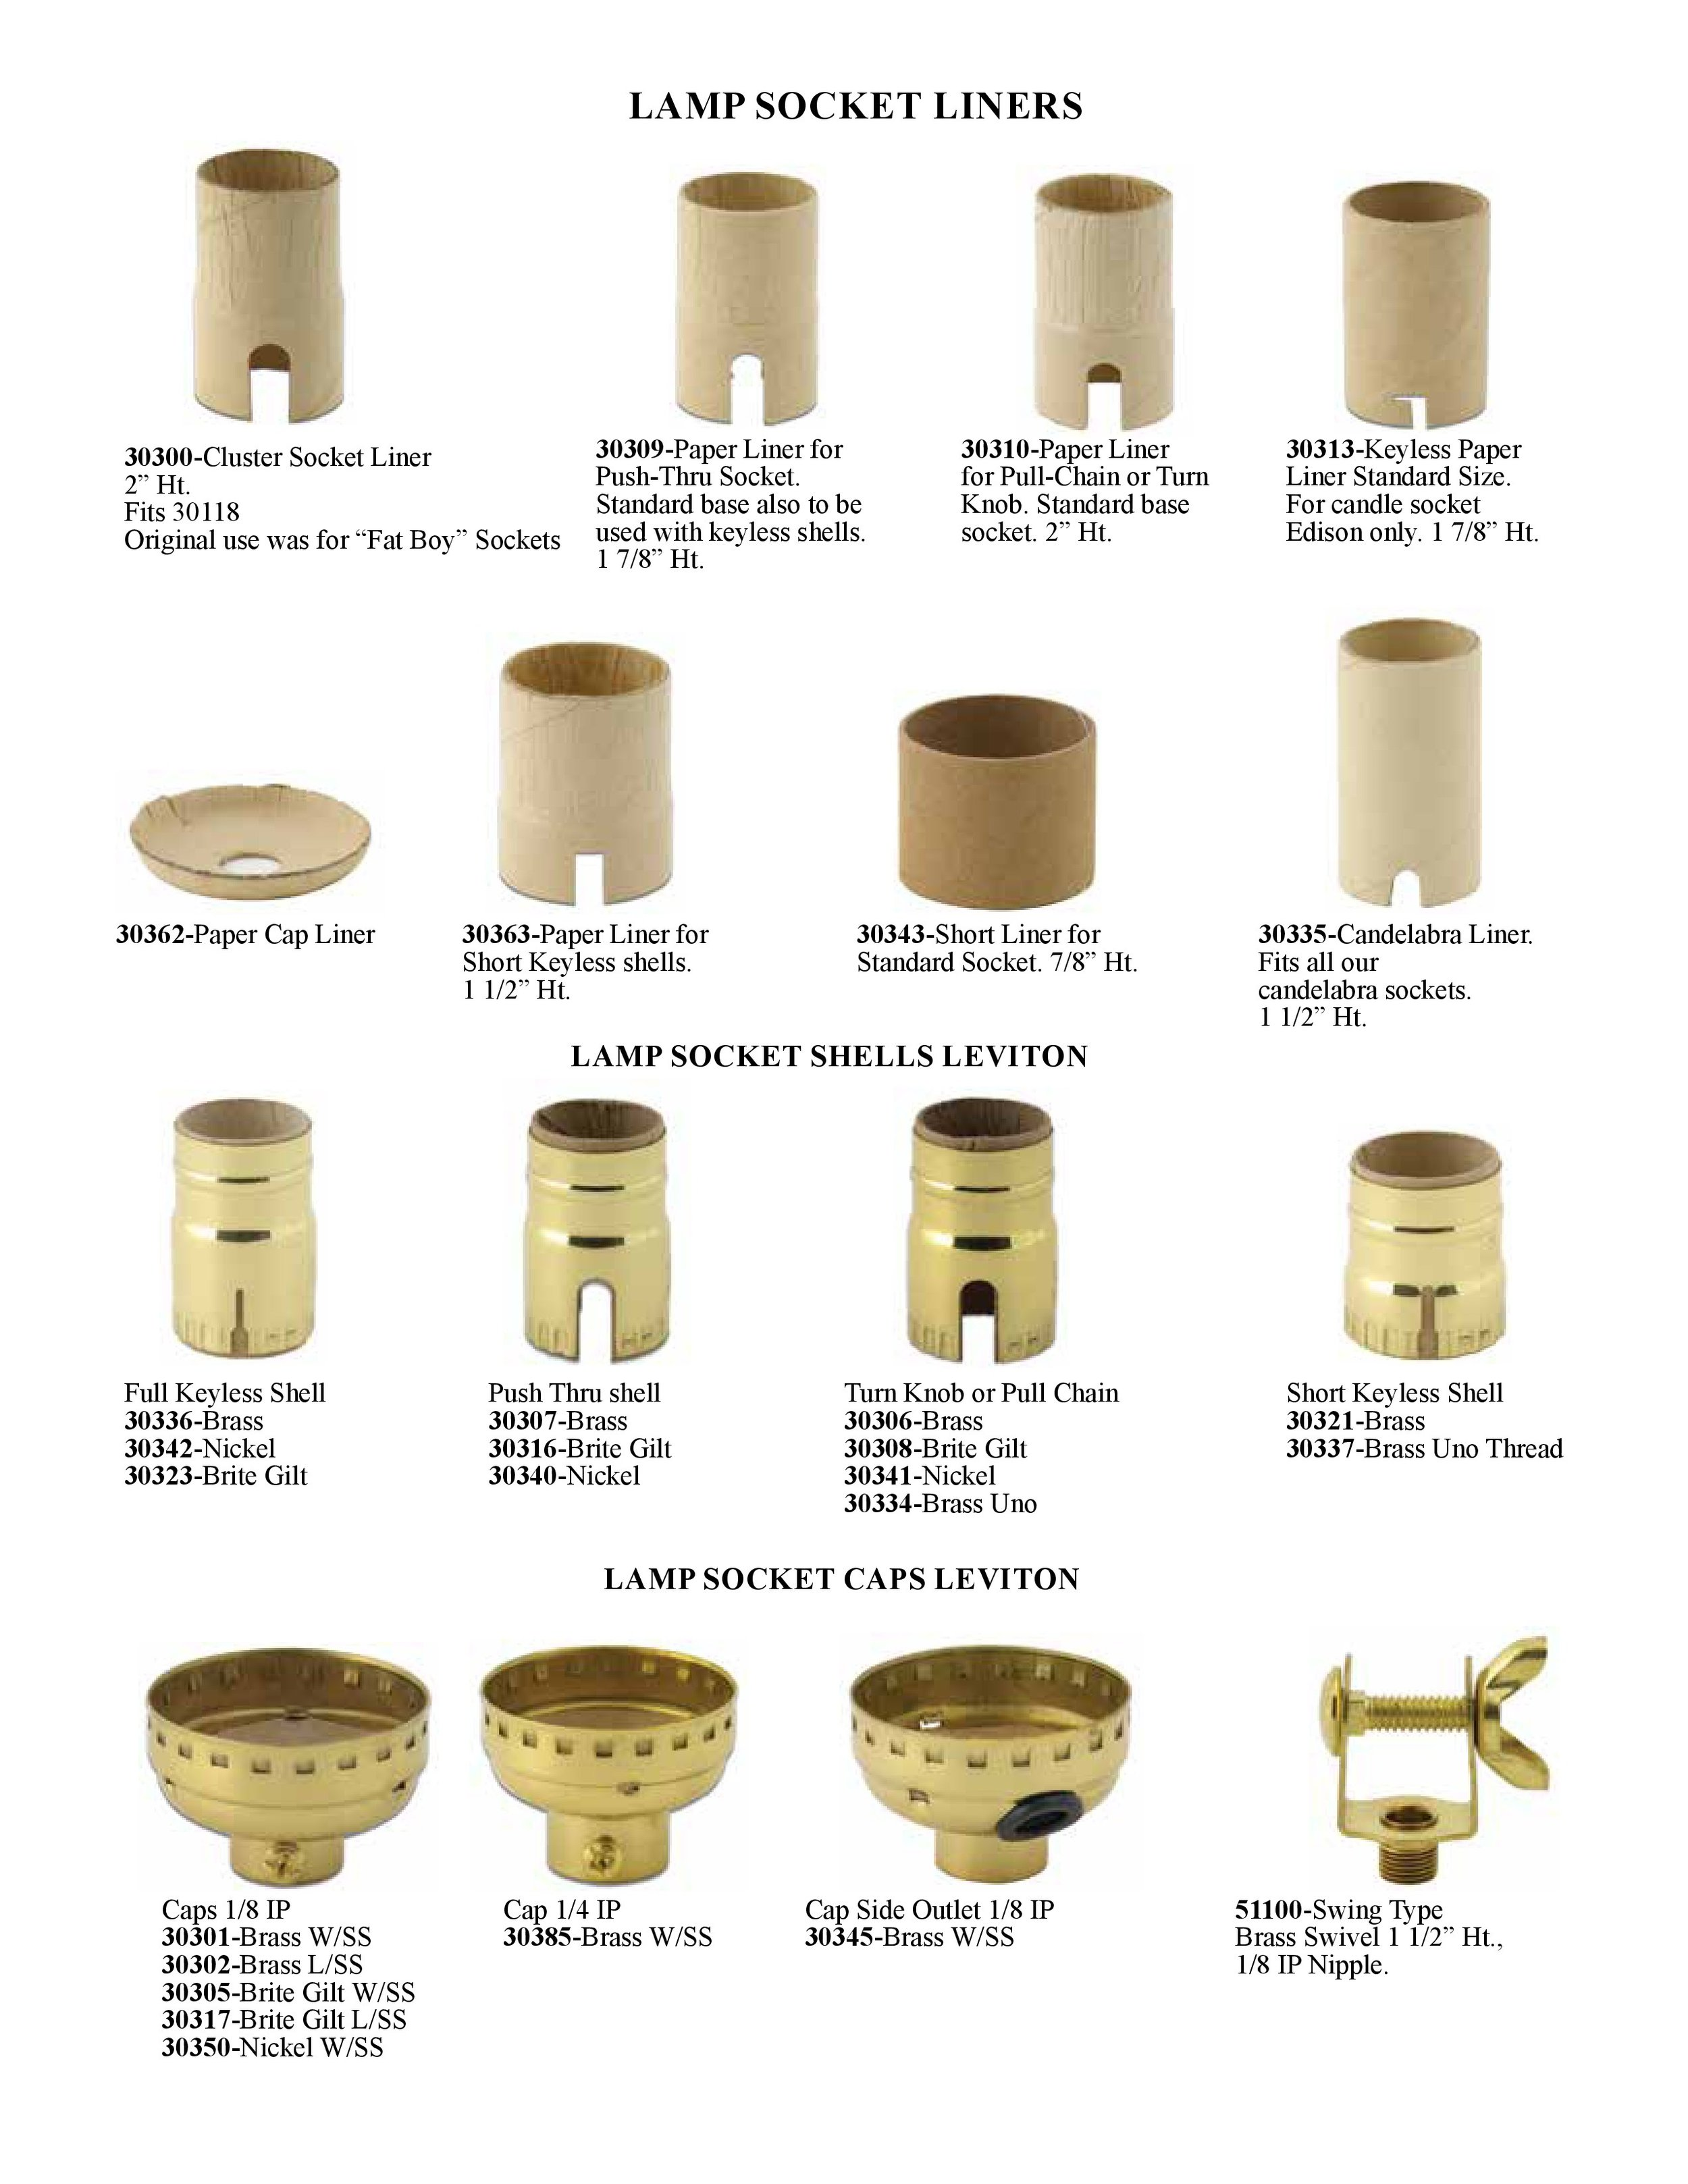 Parts Keyless Candle Socket Paper Liner